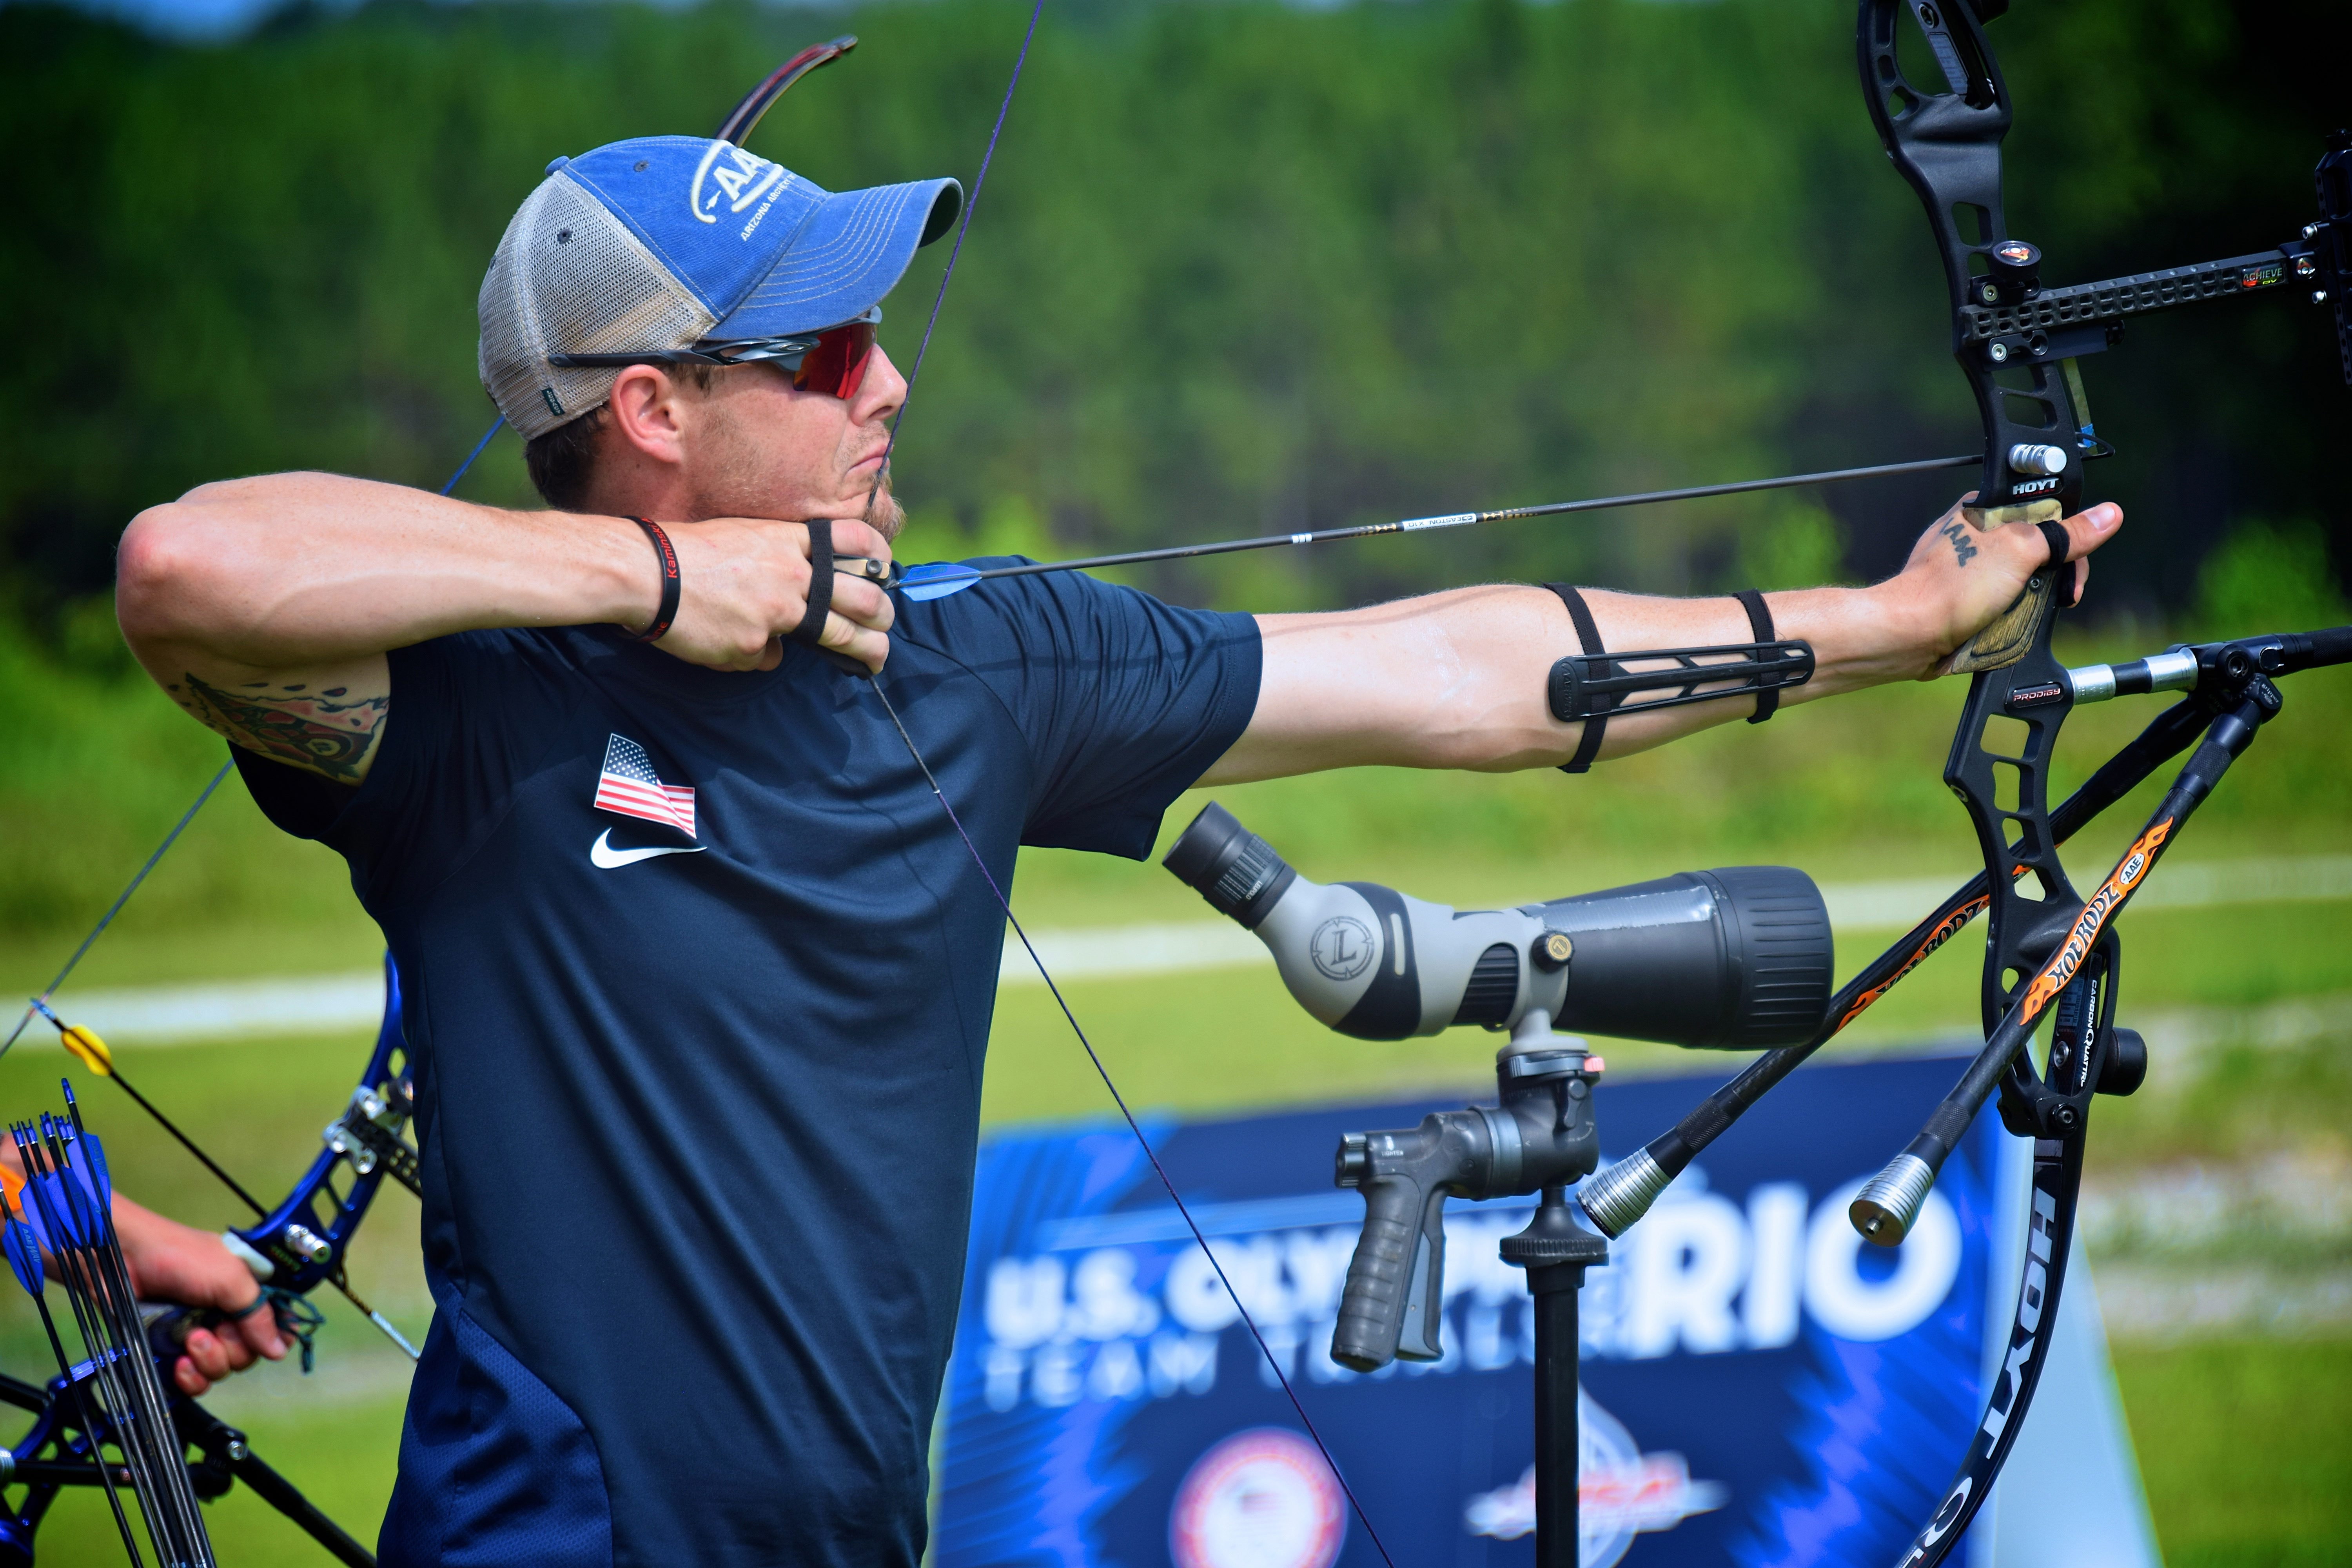 Jake Kaminski, ranked 26th in the world, will again compete on the three-man U.S. archery squad that took silver in London. The trio is expected to medal again.